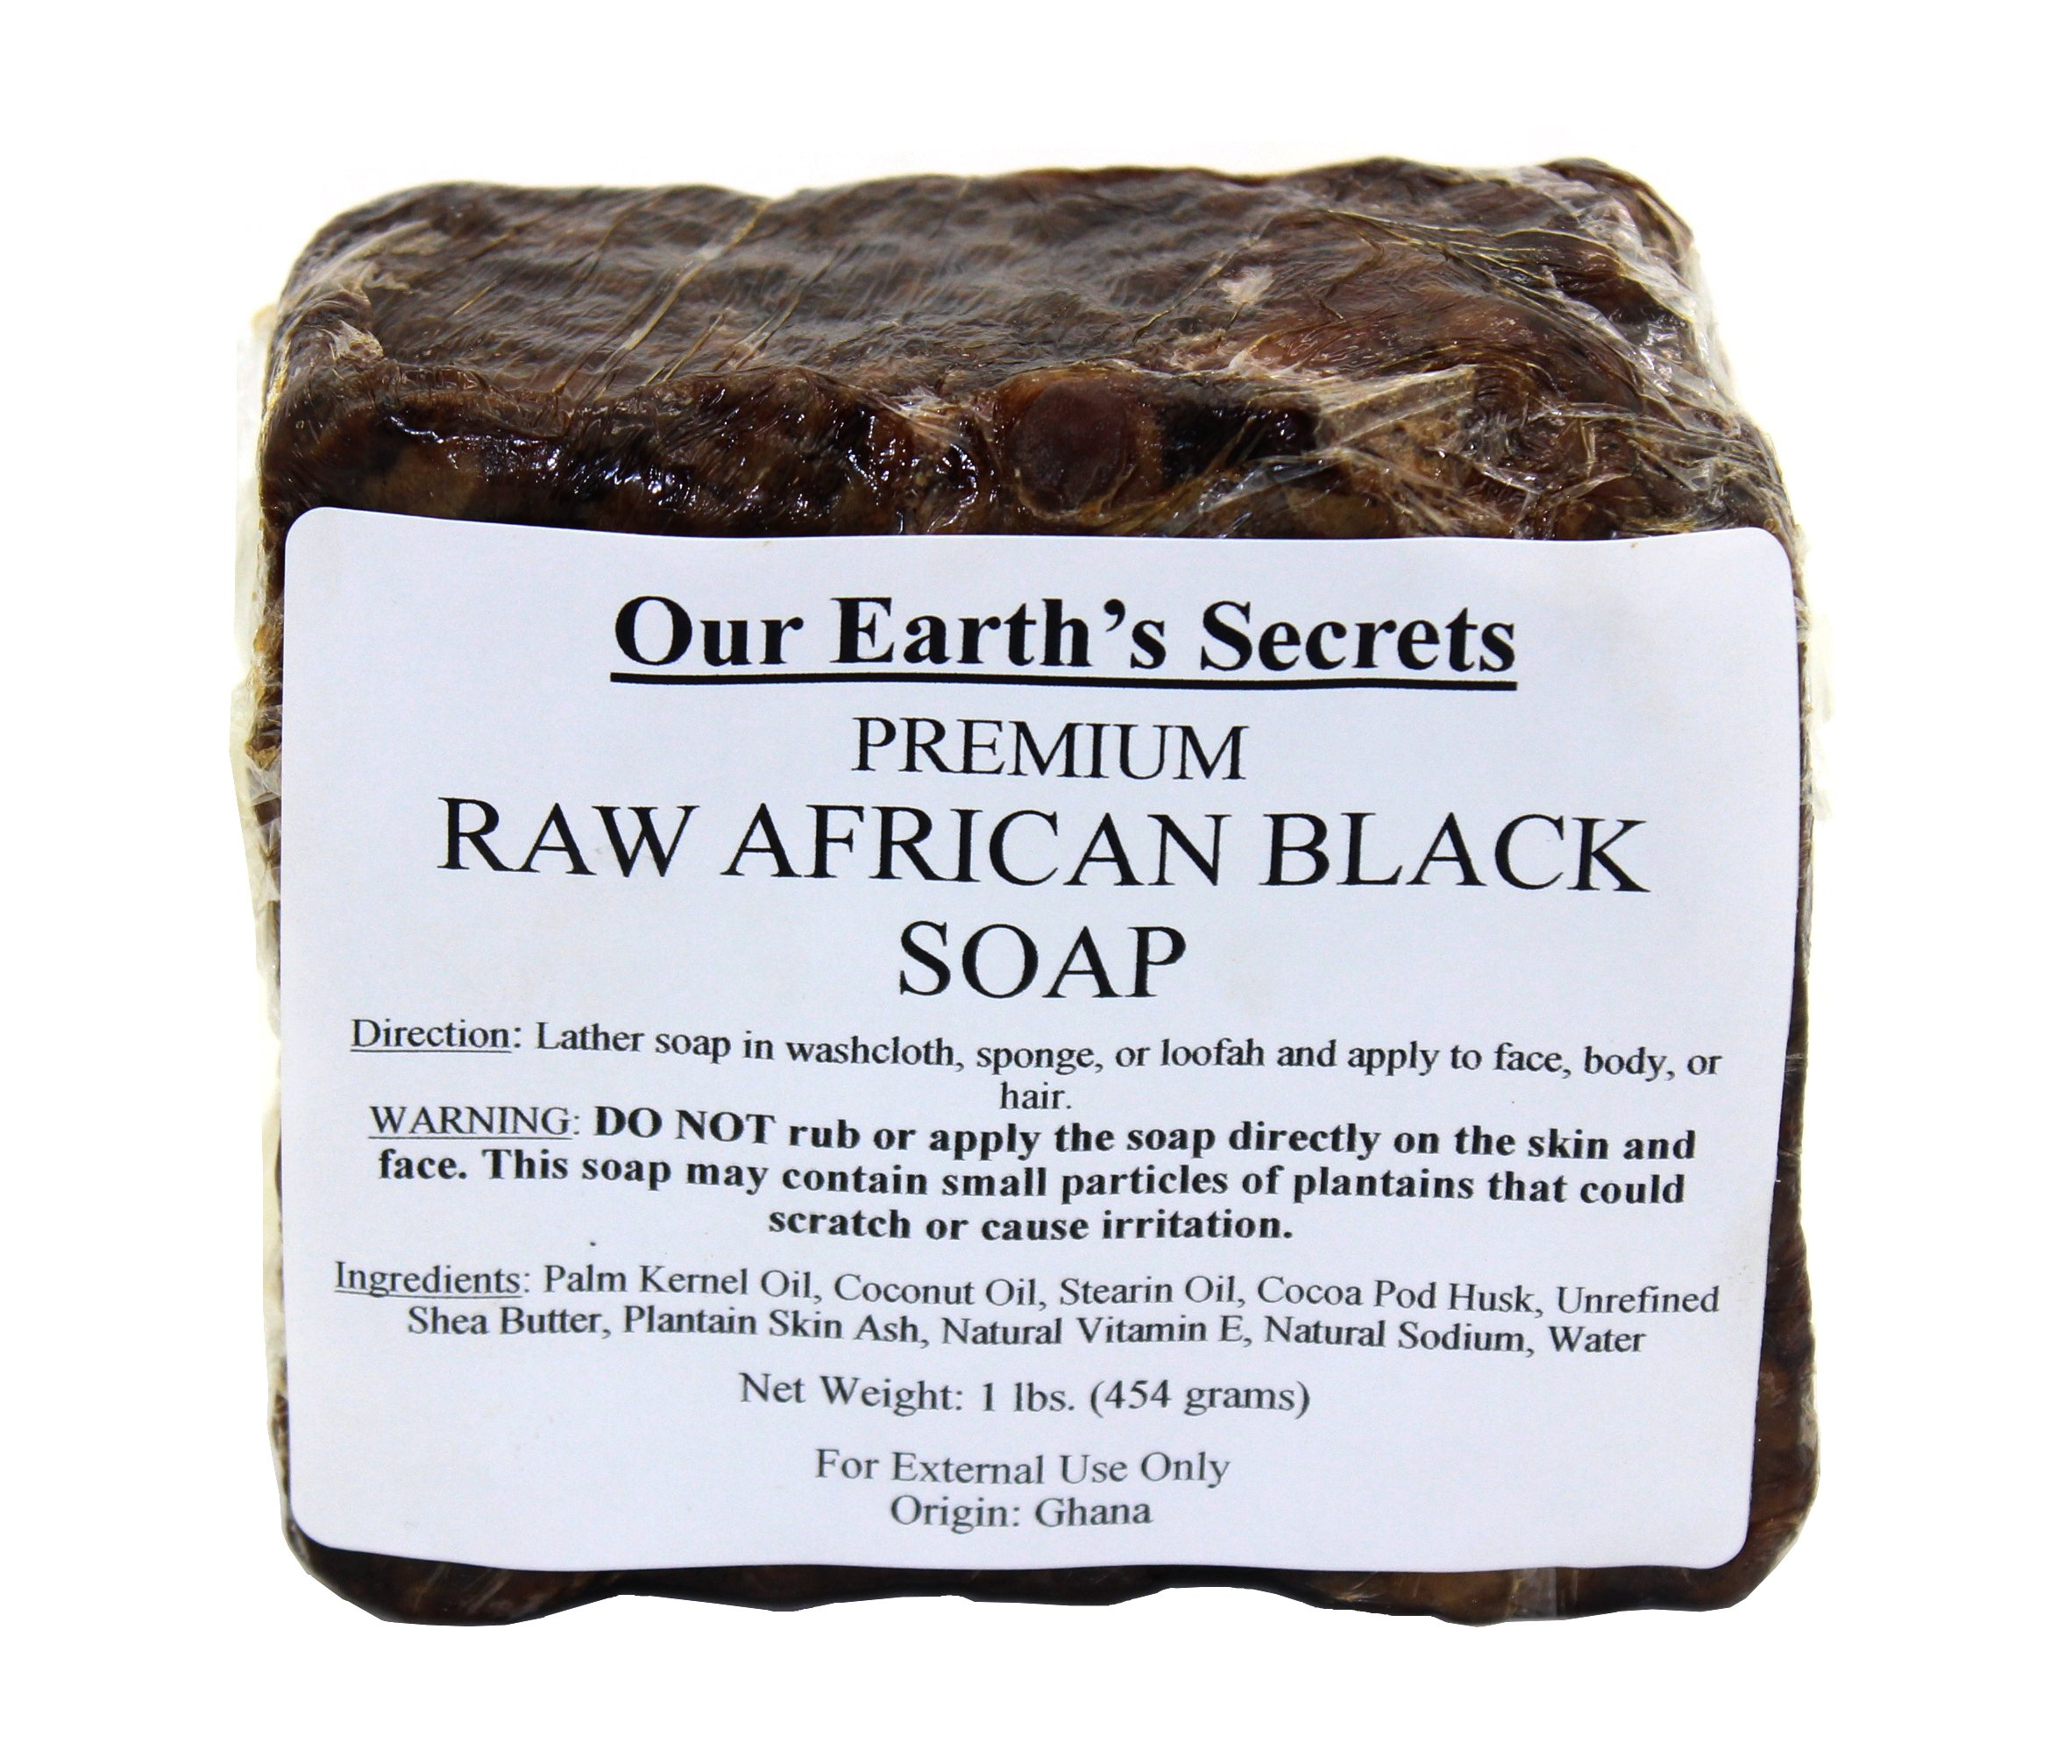 Our Earth's Secrets Raw African Black Soap, 1 lb. by Our Earth's Secrets